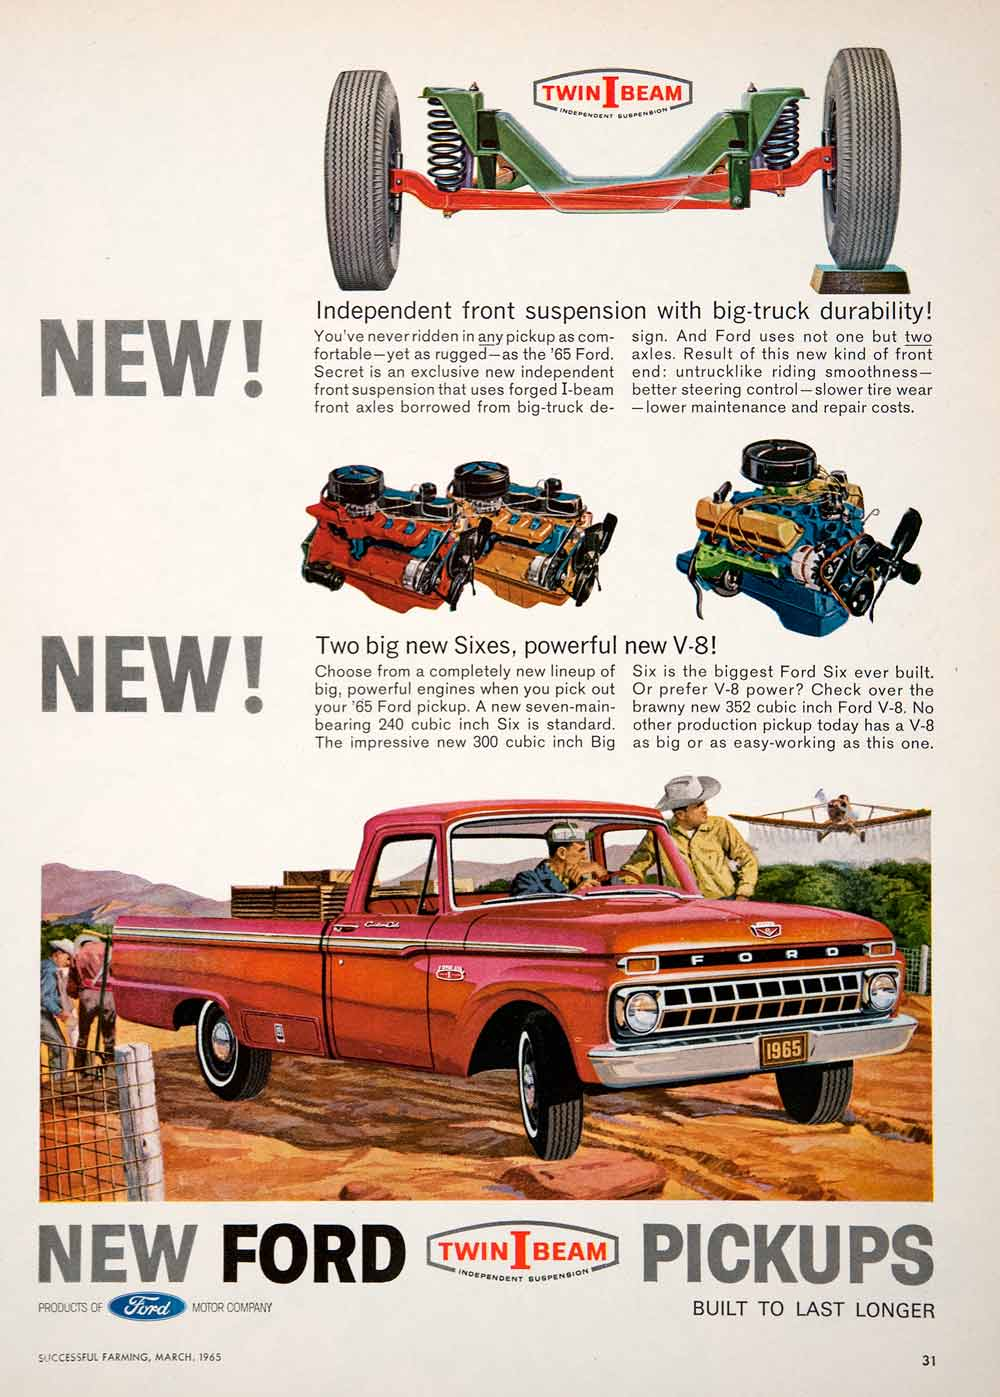 1965 Ad Ford Twin-I-Beam Pickup Truck Independent Suspension Aircraft Farm SF3